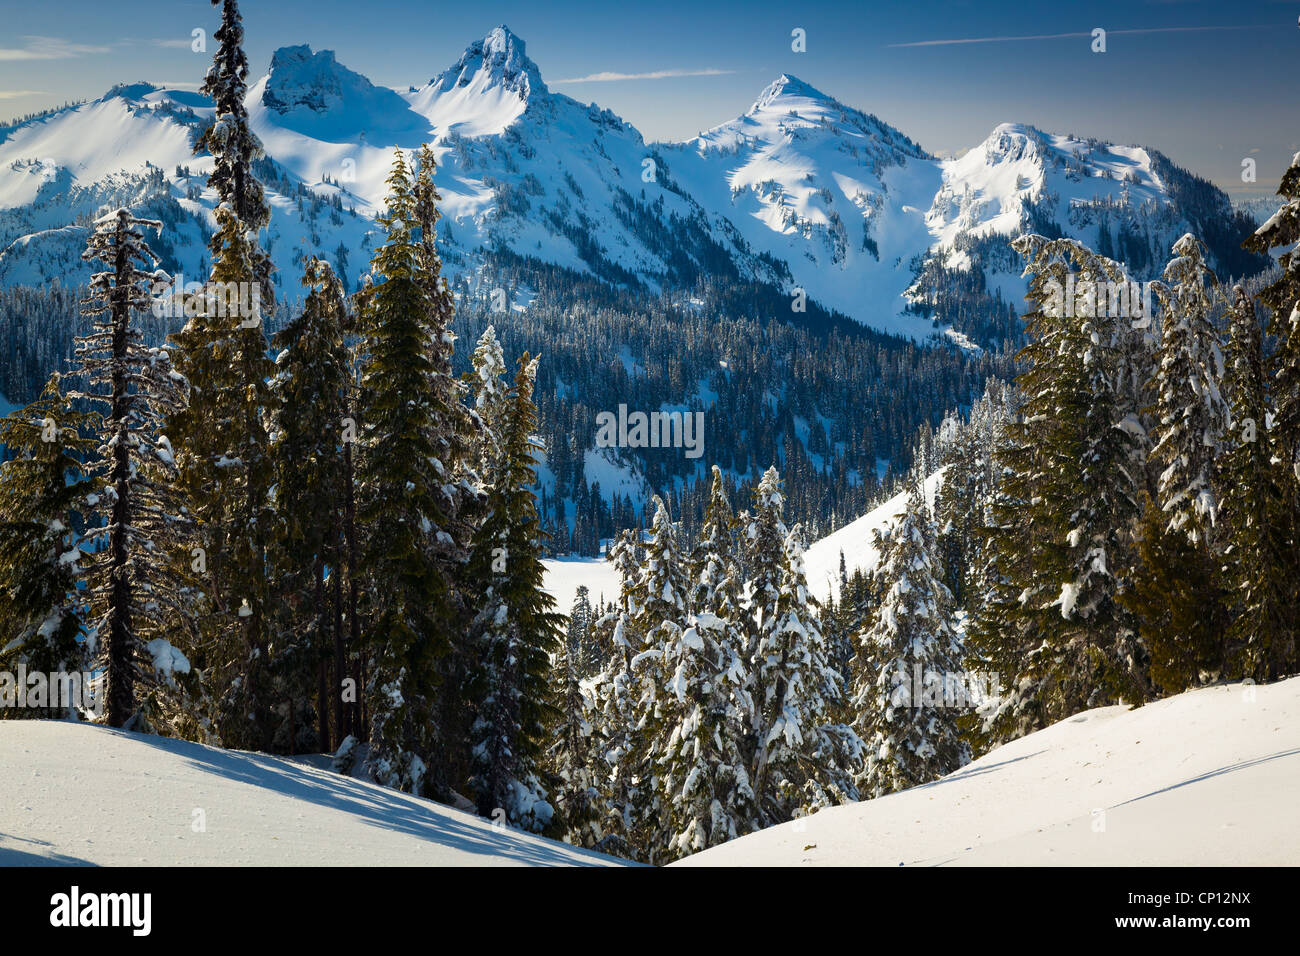 Snow and trees at the Tatoosh Range in Mount Rainier National Park in the winter. - Stock Image